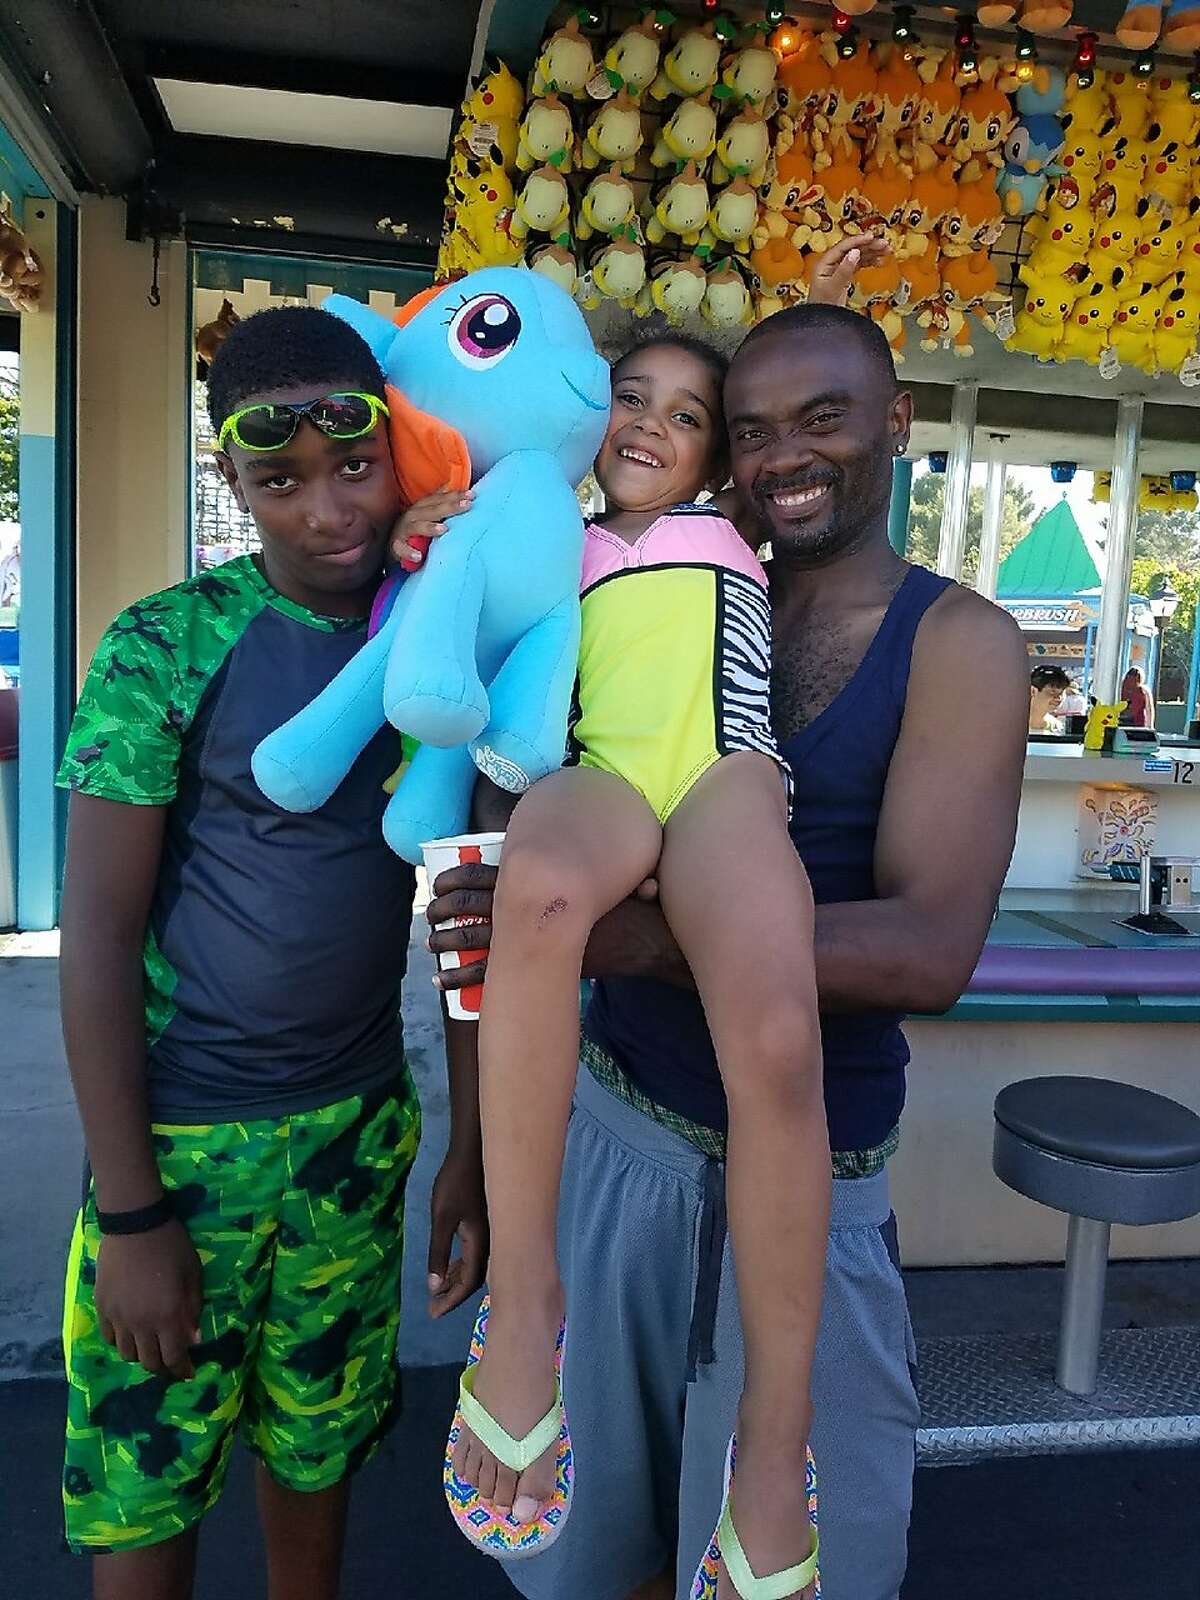 Ronell Foster, right, seen in this undated photo with his two children. Foster was fatally shot by a Vallejo police officer in February 2018.